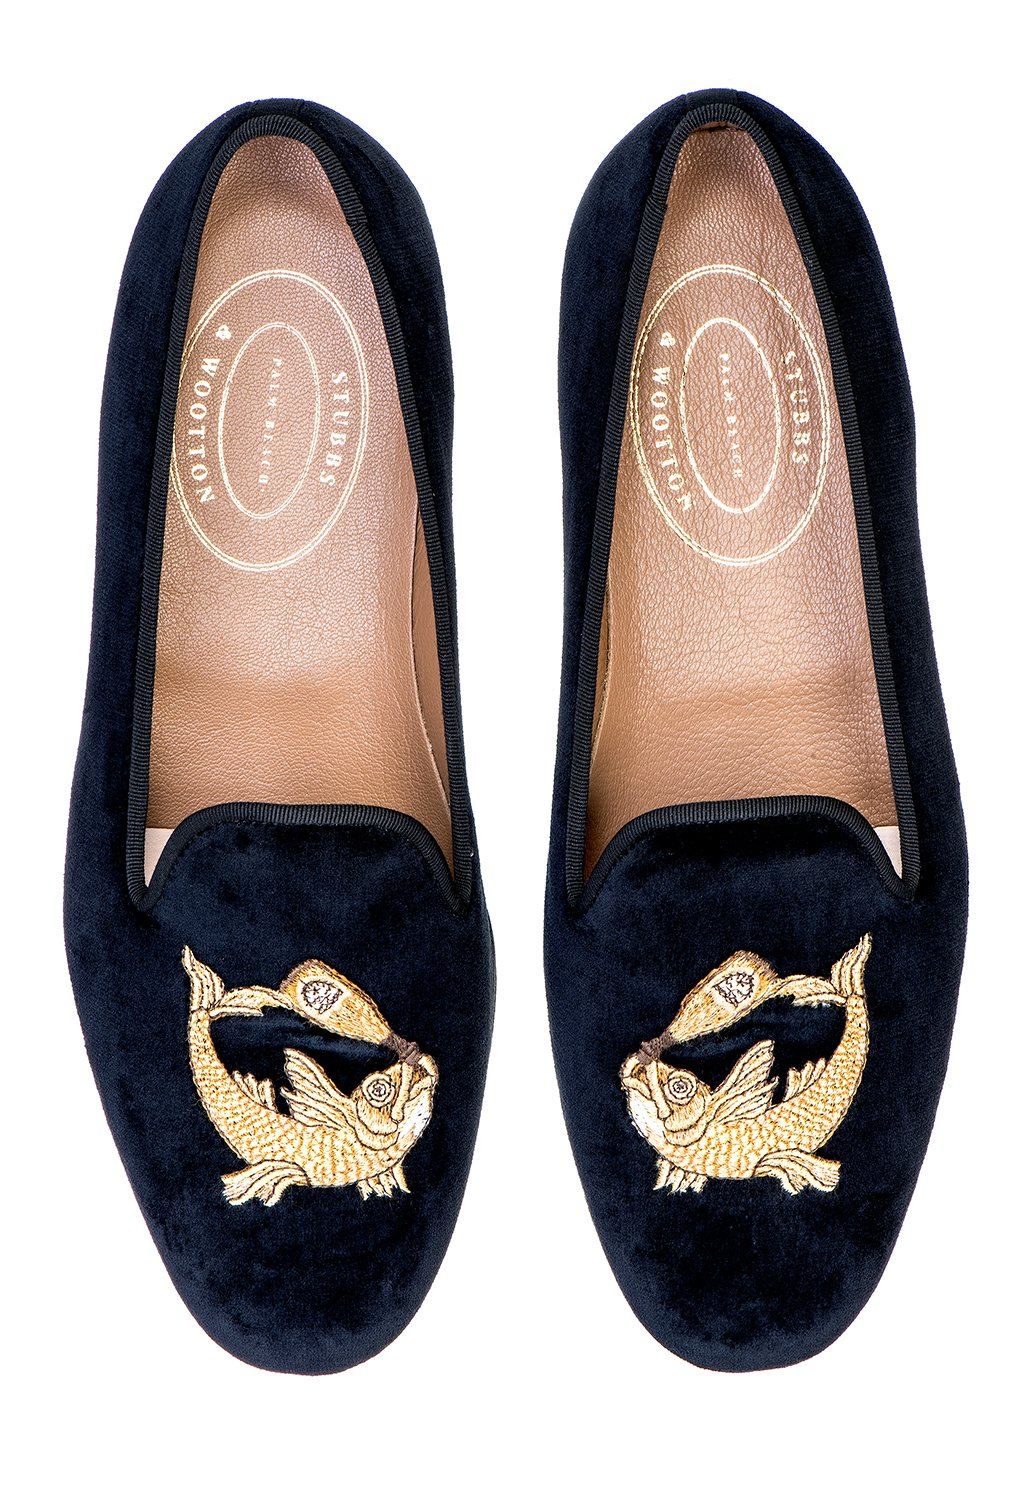 b1b4ee582129 Our Boozefish slipper features a Black Velvet Upper with a Black Grosgrain  Trim. Finished off with our Boozefish embroidery. - Meticulously  Hand-crafted in ...